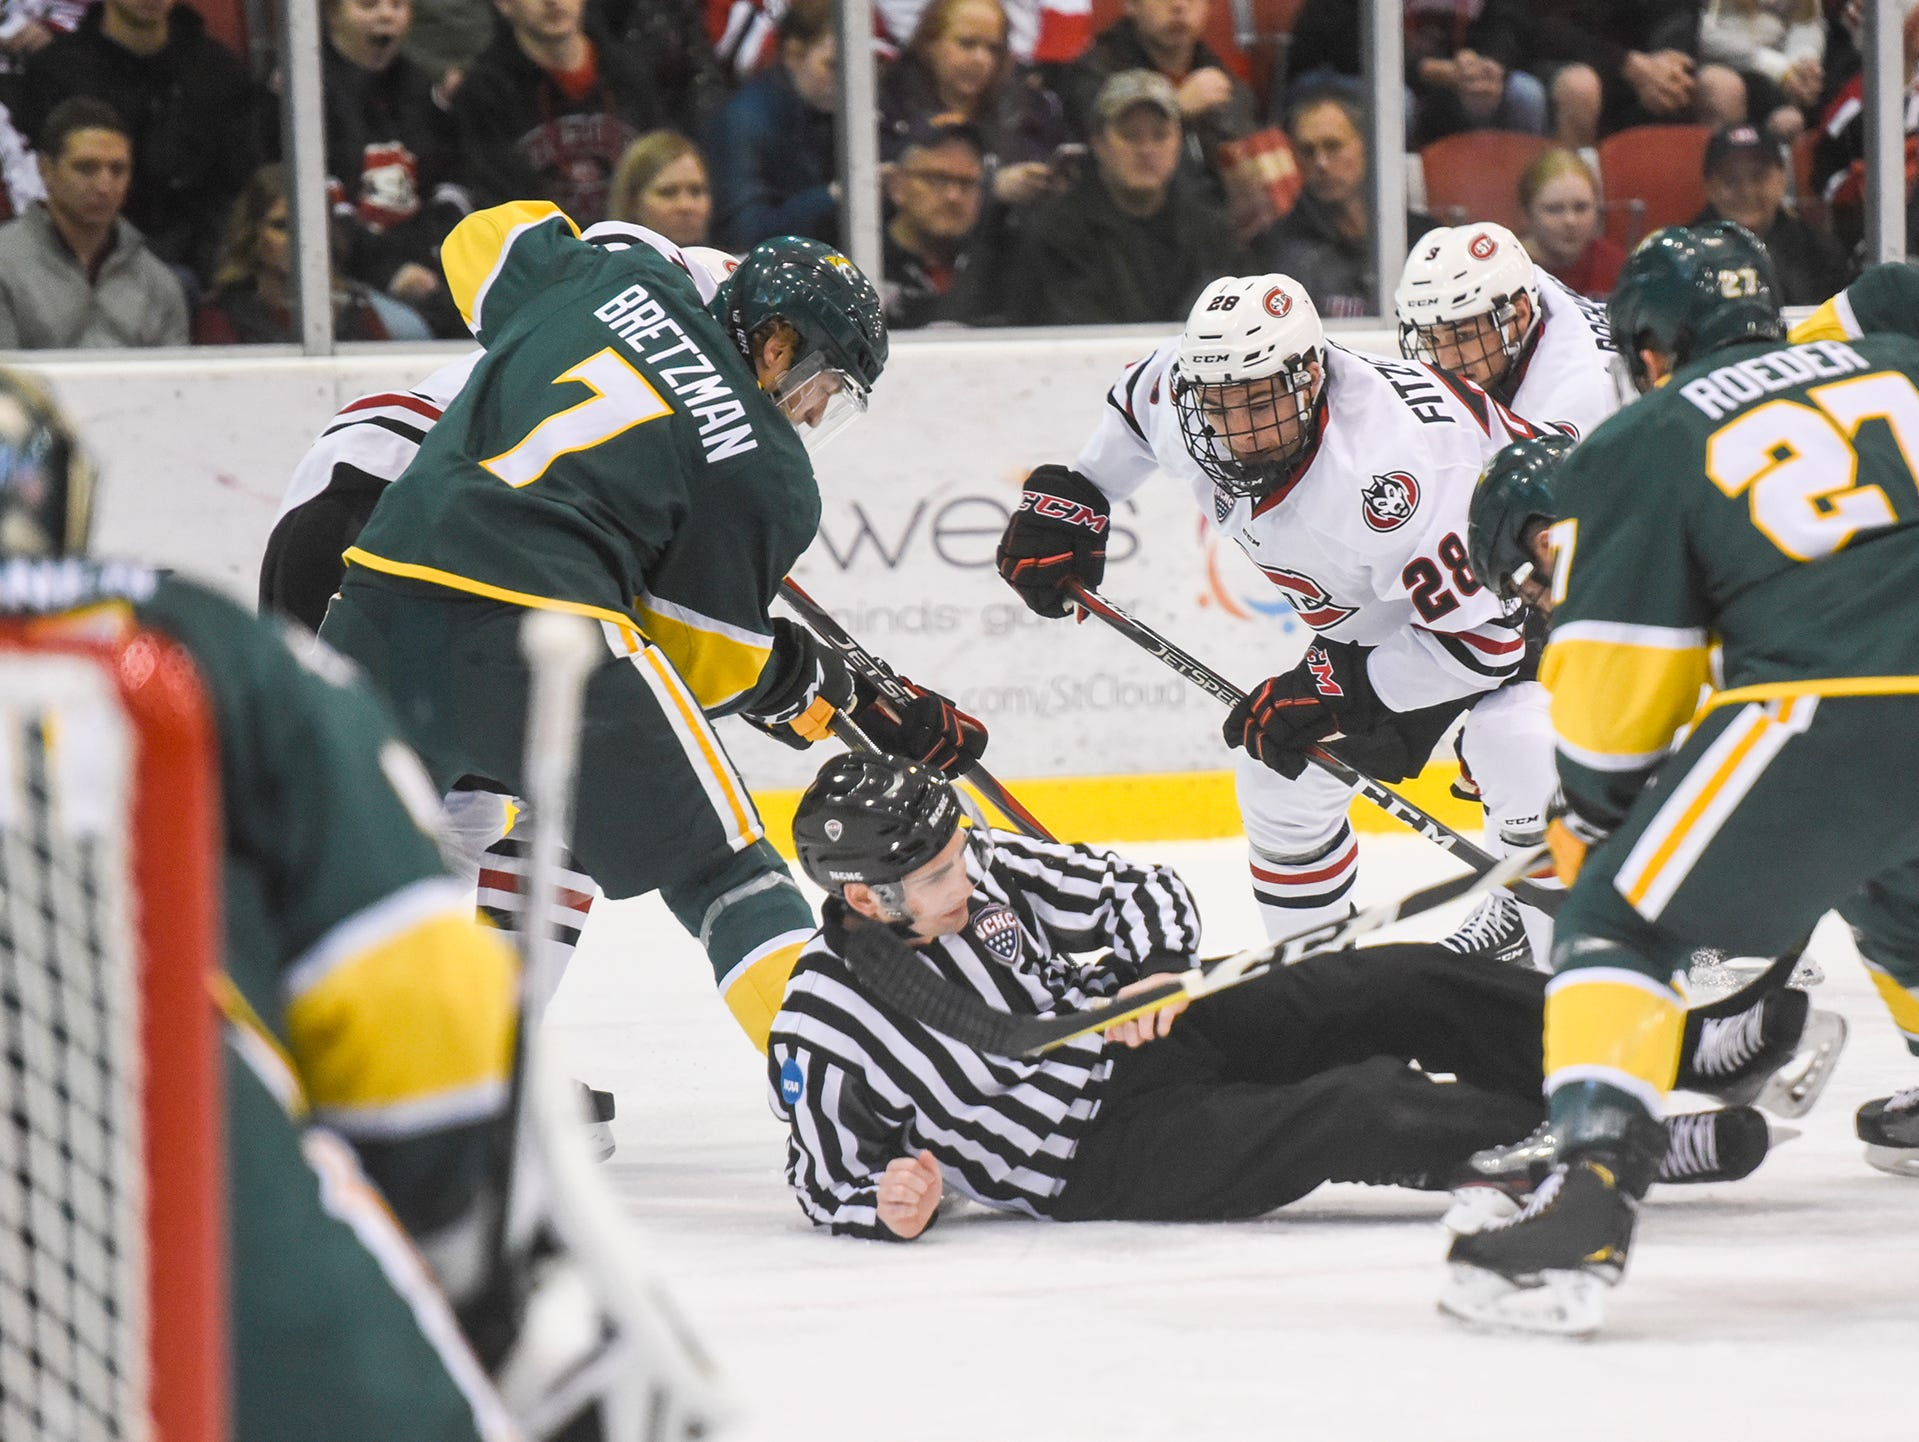 An official gets tangled with players on the ice during the Saturday, Oct. 20, game at the Herb Brooks National Hockey Center in St. Cloud.